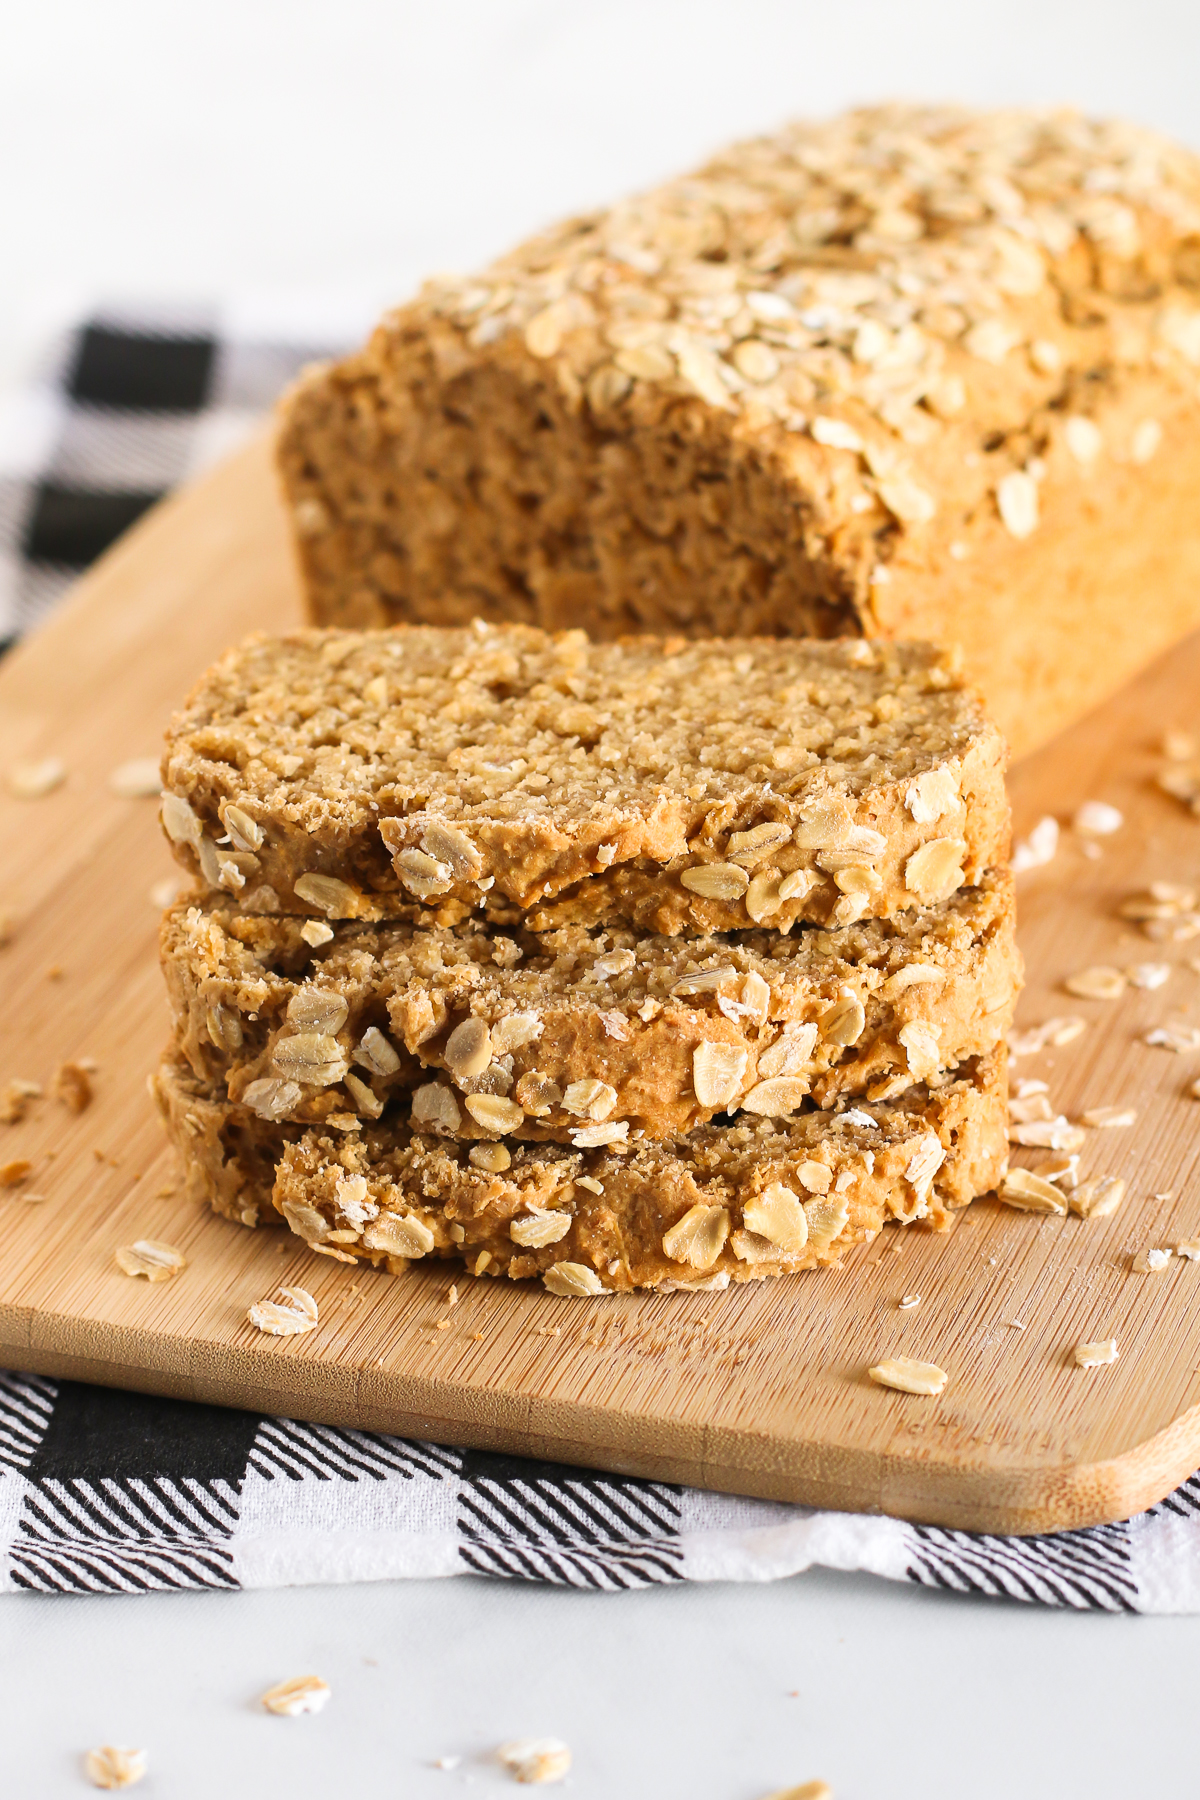 Gluten Free Vegan Oatmeal Quick Bread. Slices of soft oat bread, ready for your favorite jam or nut butter!